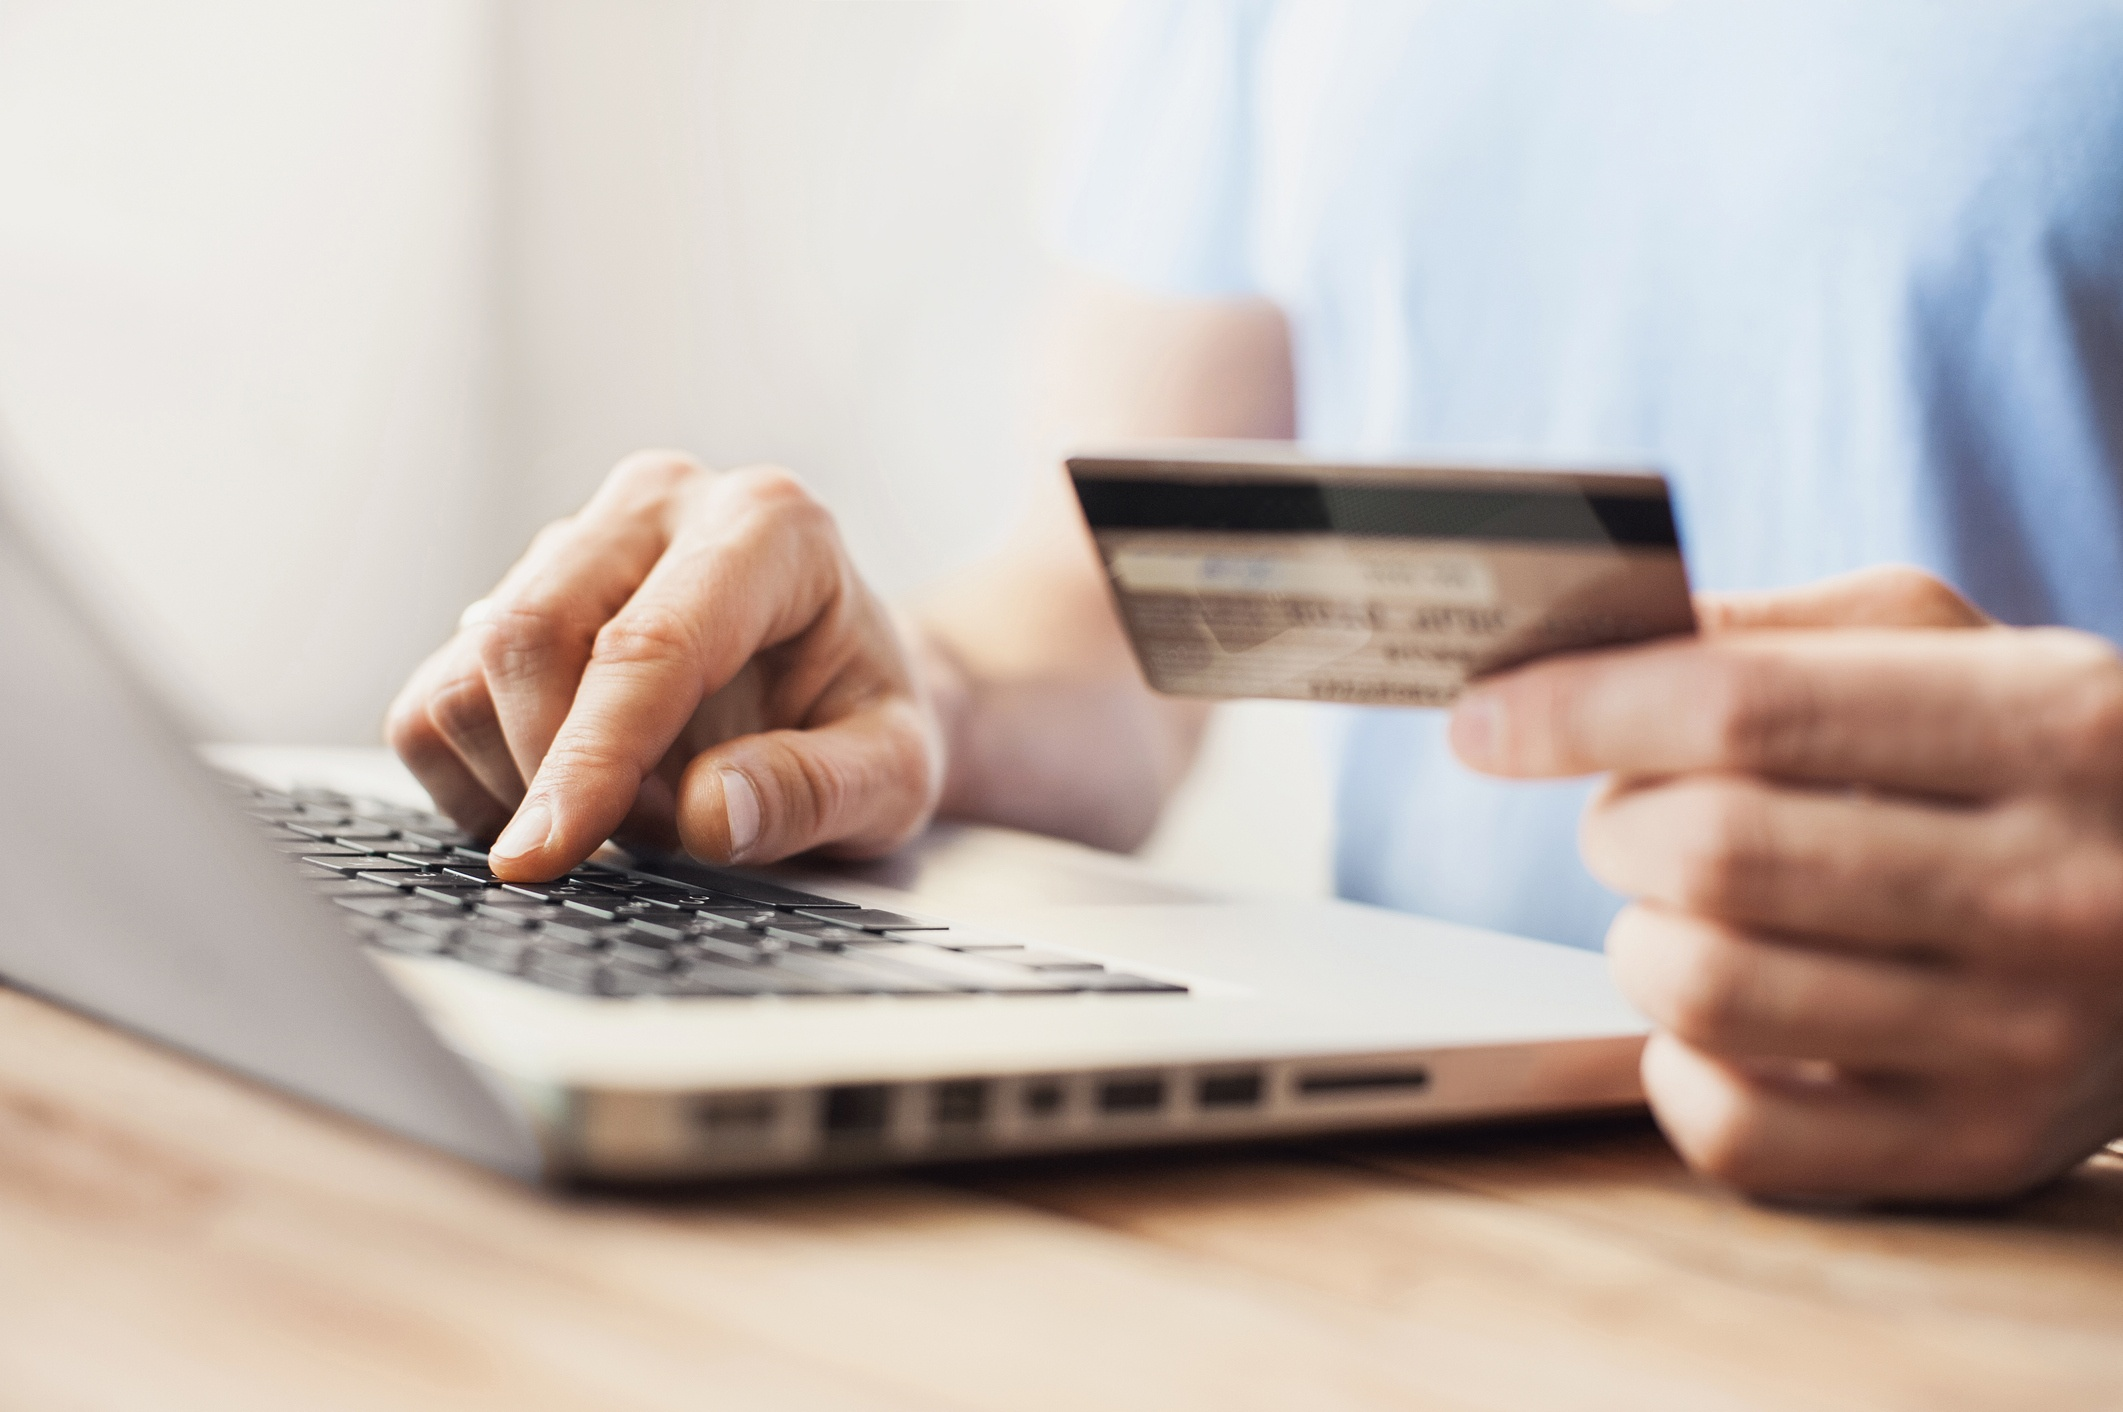 How Does Online Credit Card Processing Work?